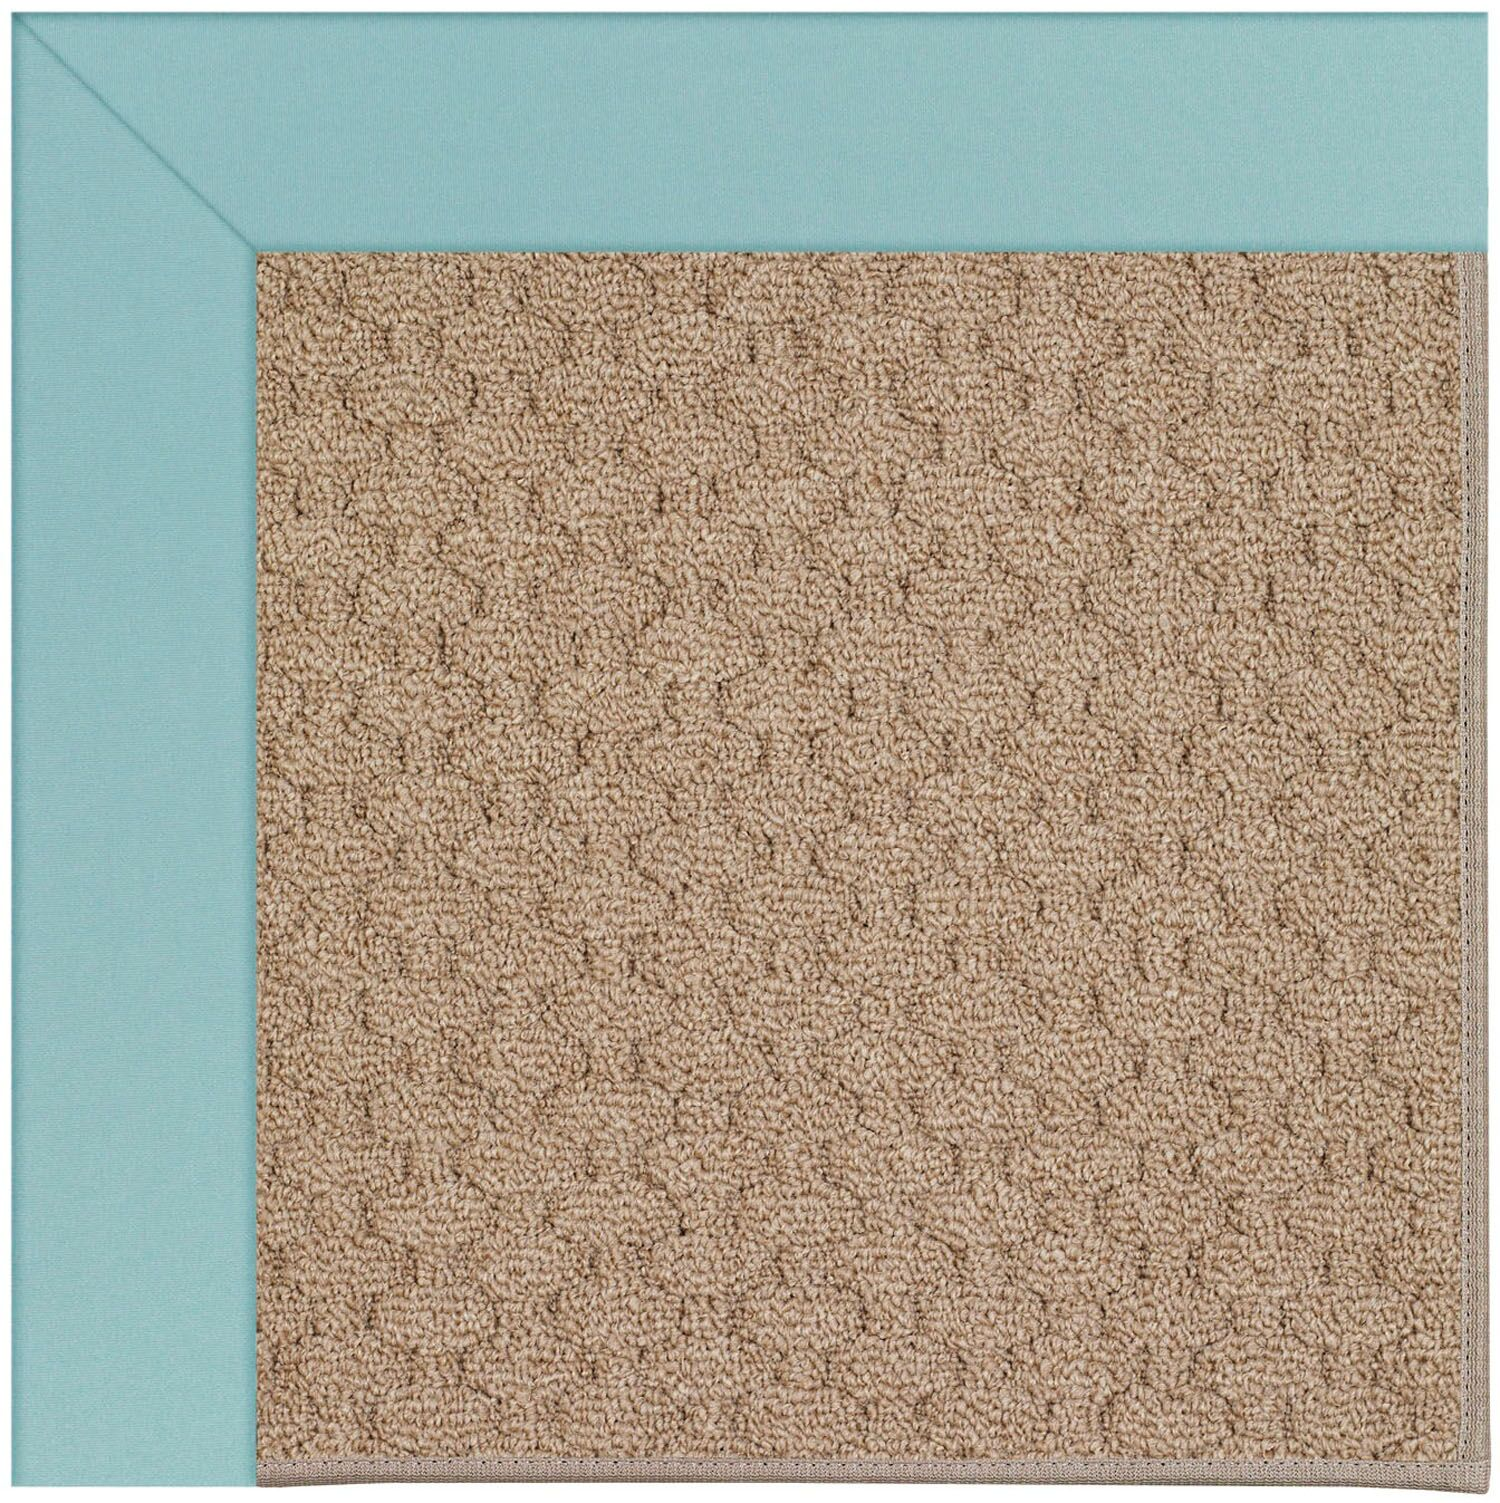 Lisle Machine Tufted Seafaring Blue/Brown Indoor/Outdoor Area Rug Rug Size: Rectangle 7' x 9'